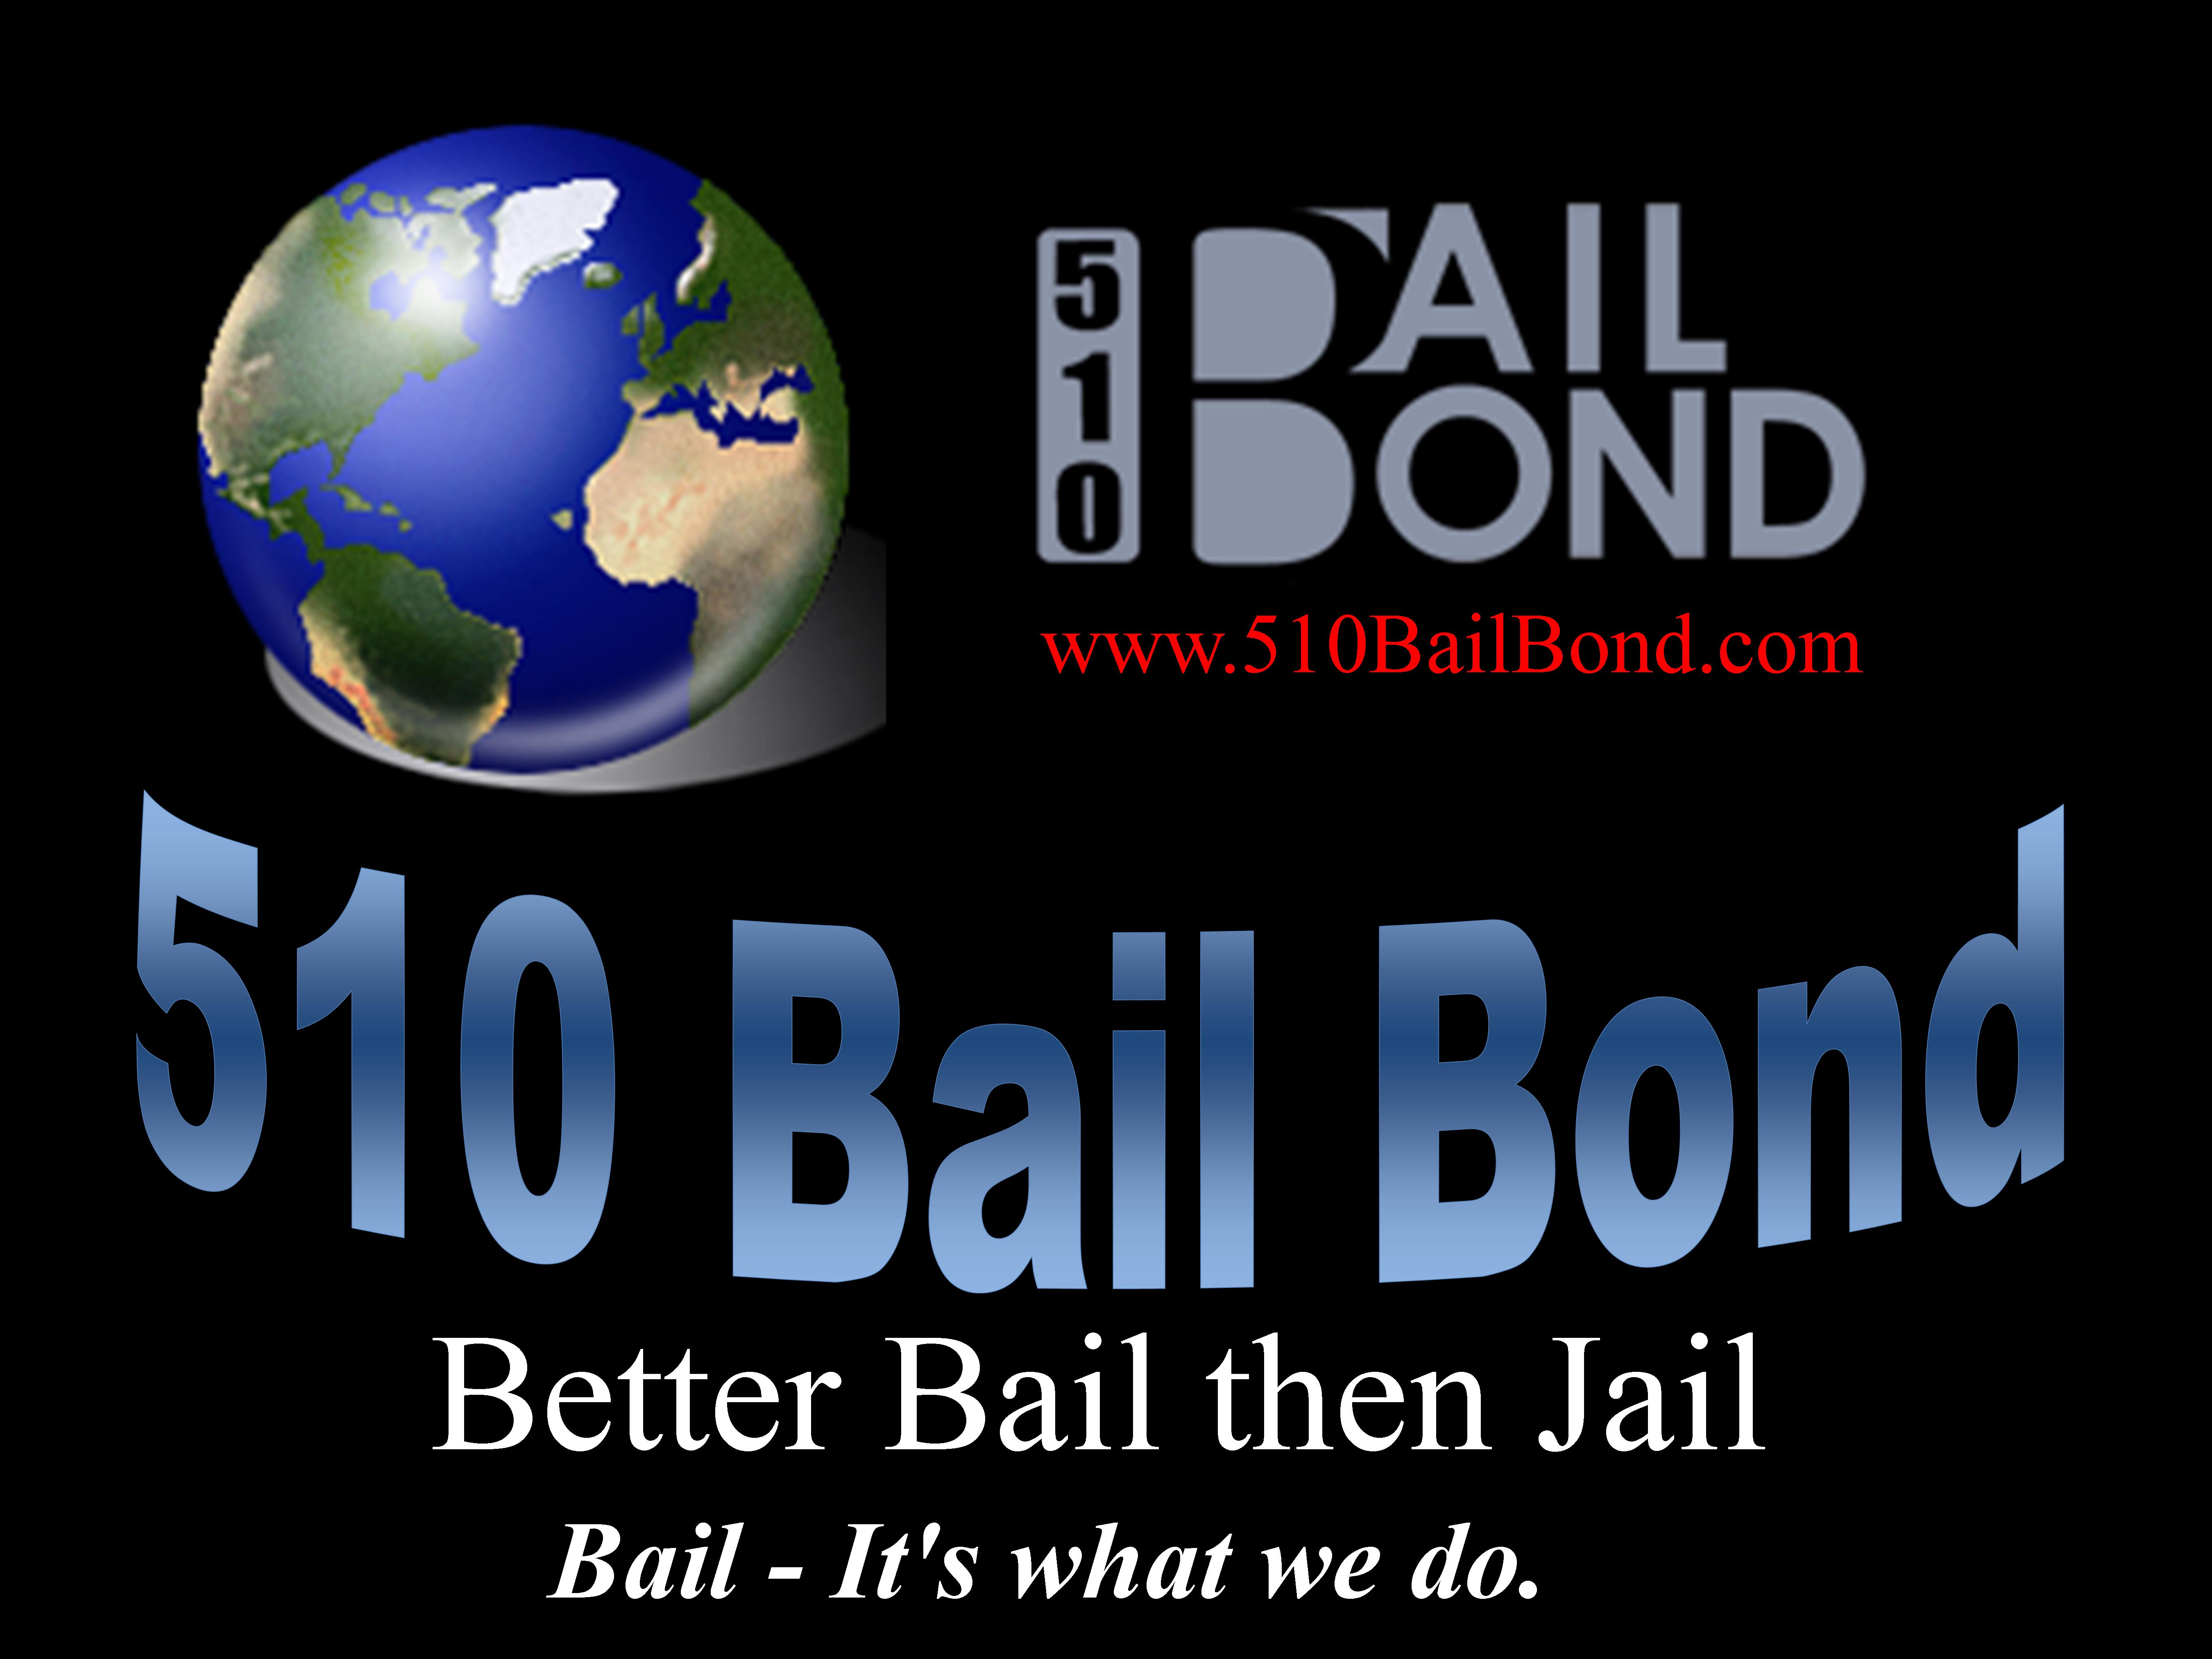 Better Bail then Jail